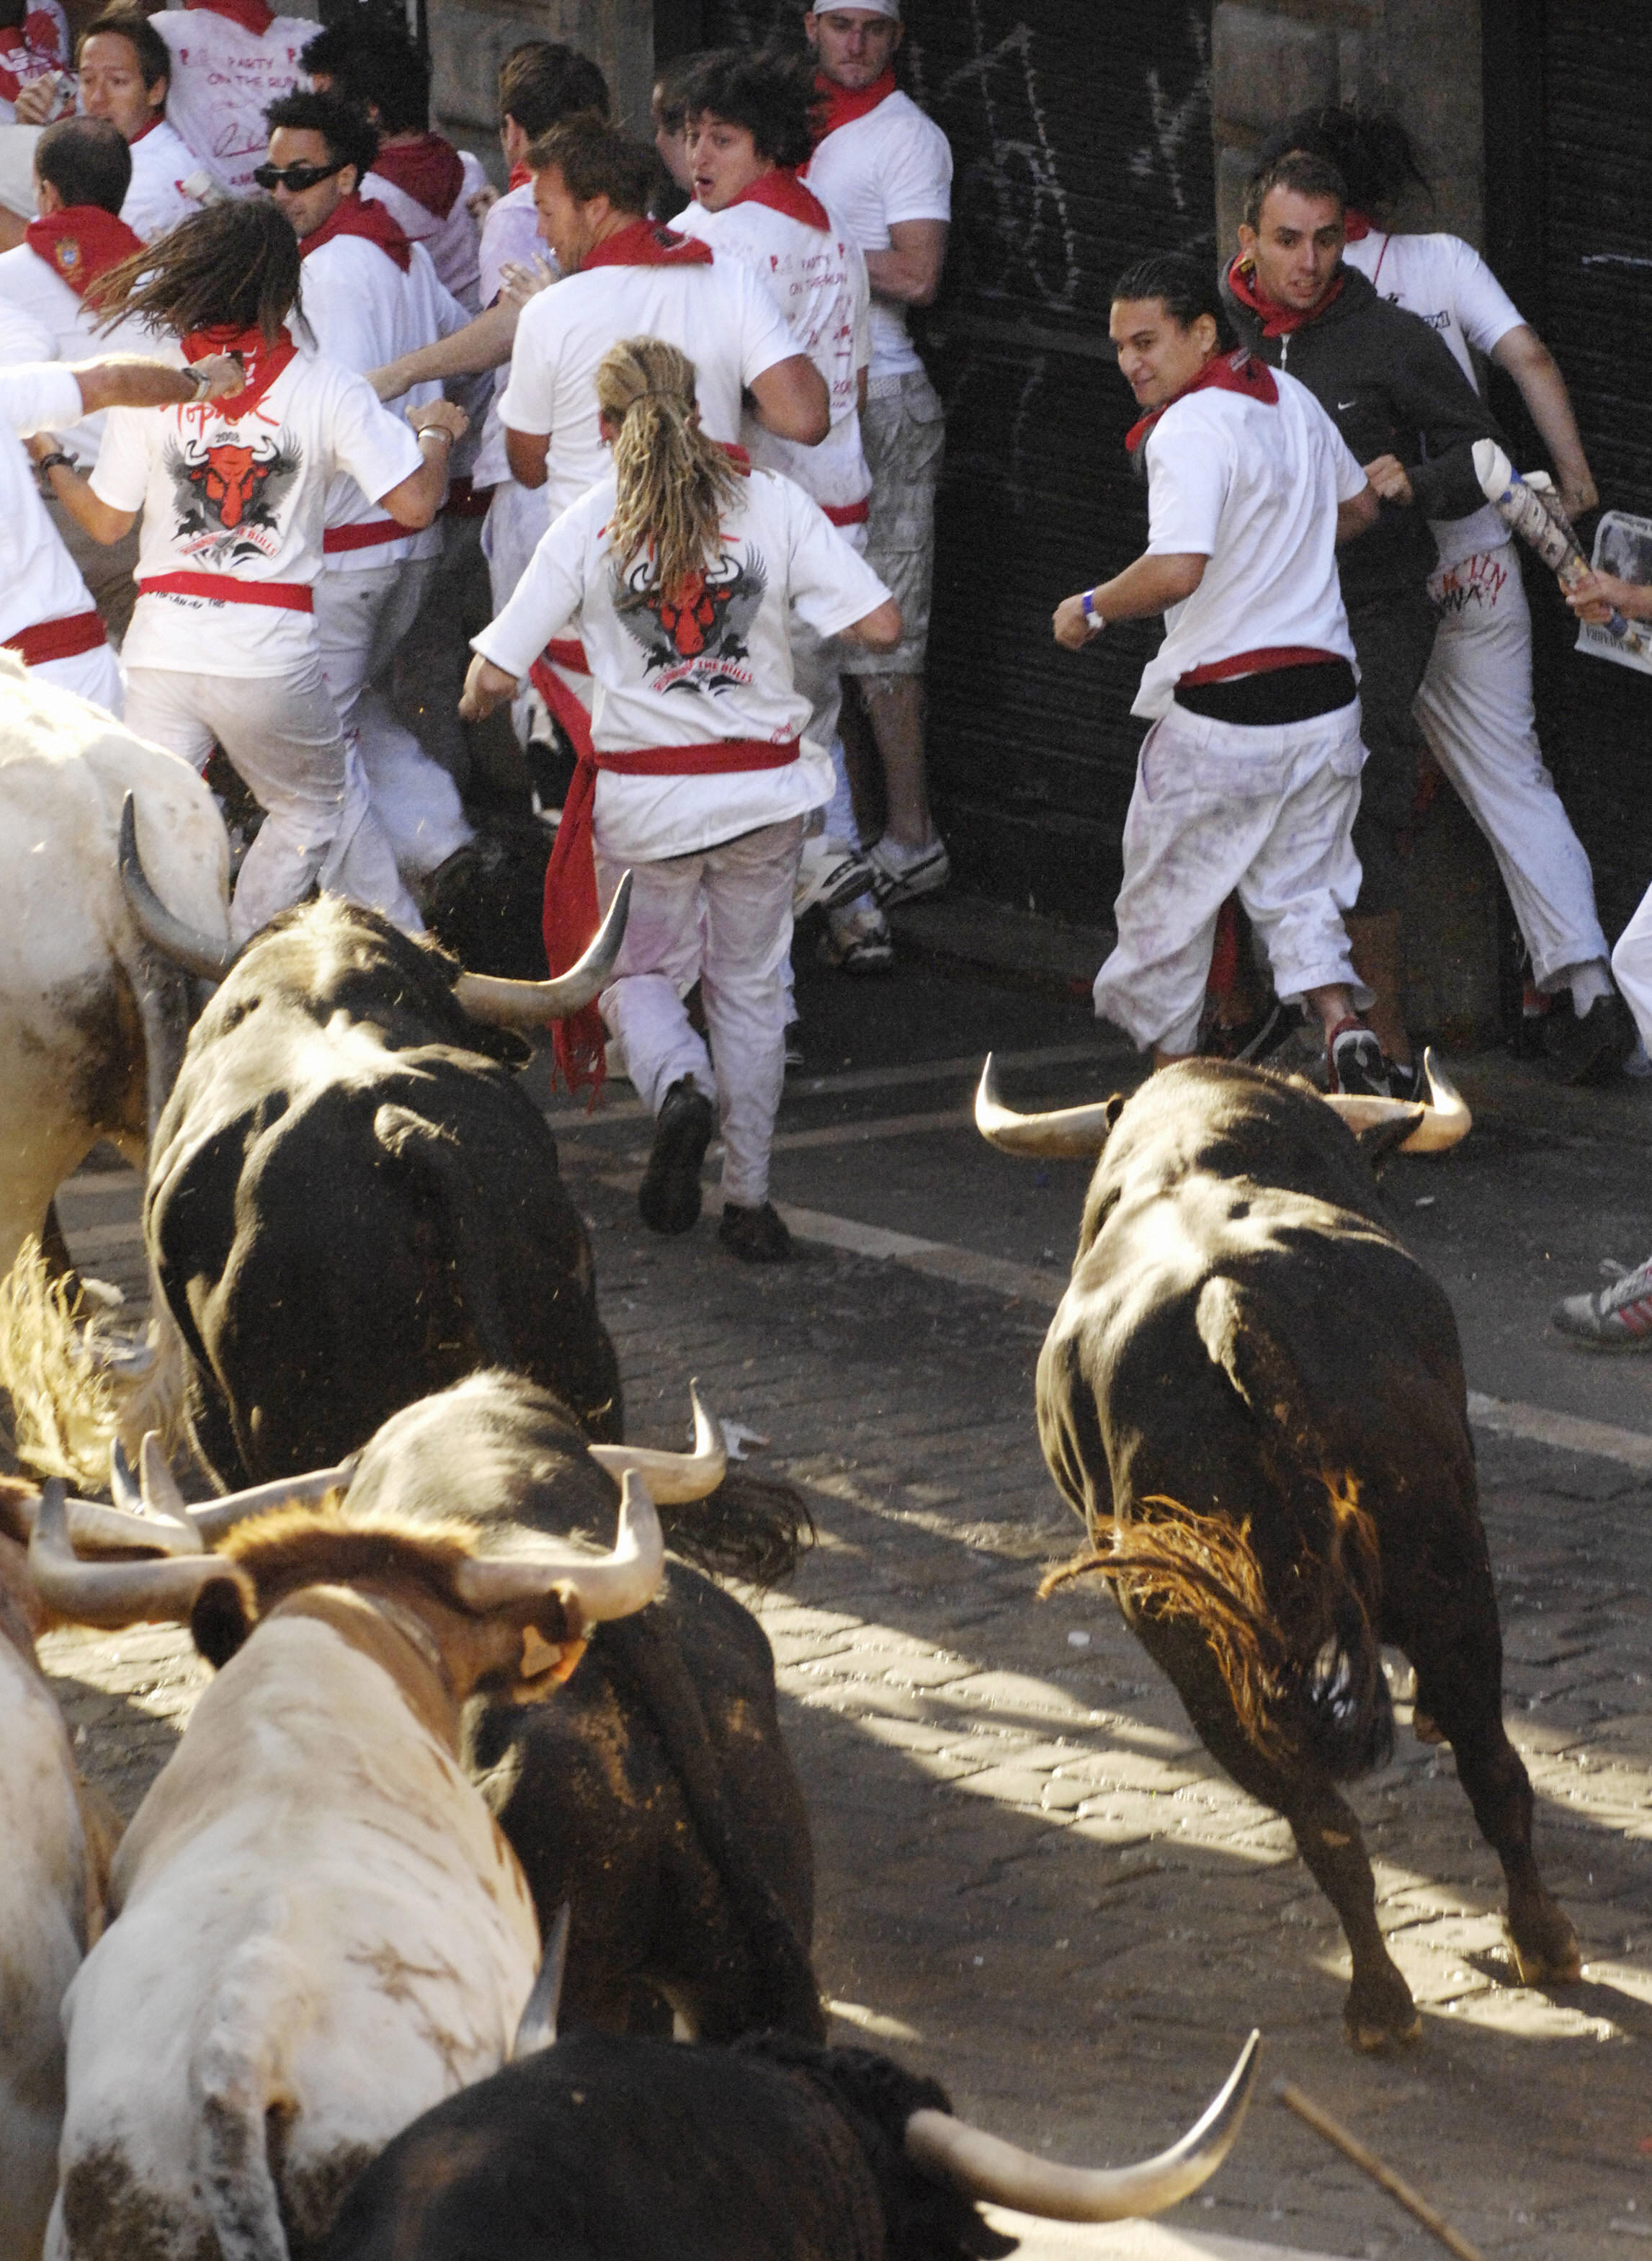 The course leads to the arenas where bullfights are later staged.